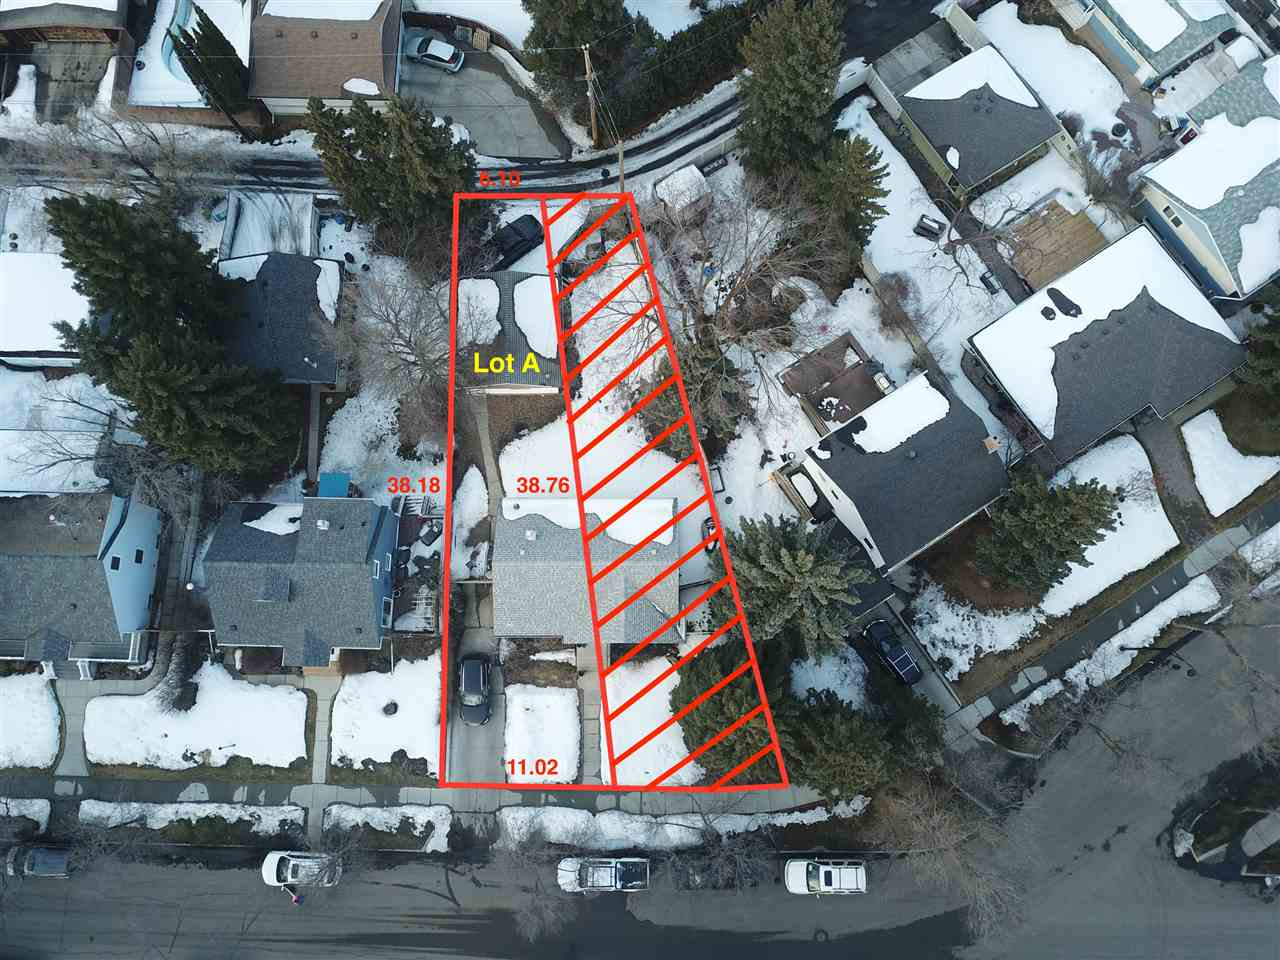 Here is a wonderful opportunity for you to build your dream home in Crestwood, one of the most sought after communities in Edmonton. This soon to be vacant lot sits on a beautiful, quiet, treed lined street just a one block from the Mackenzie Ravine. This property is also just steps from Crestwood public school, St. Paul Catholic school, loads of playgrounds, a community centre, an outdoor hockey rink and a curling club. This lot has a 36' wide frontage and 125' deep. Plenty of space to build a large 2 or 3 story home. The original home still stands however the house will be demolished and the site cleared before possession. The seller is able and willing to build a new home on the property and has awesome house designs/plans available if required.